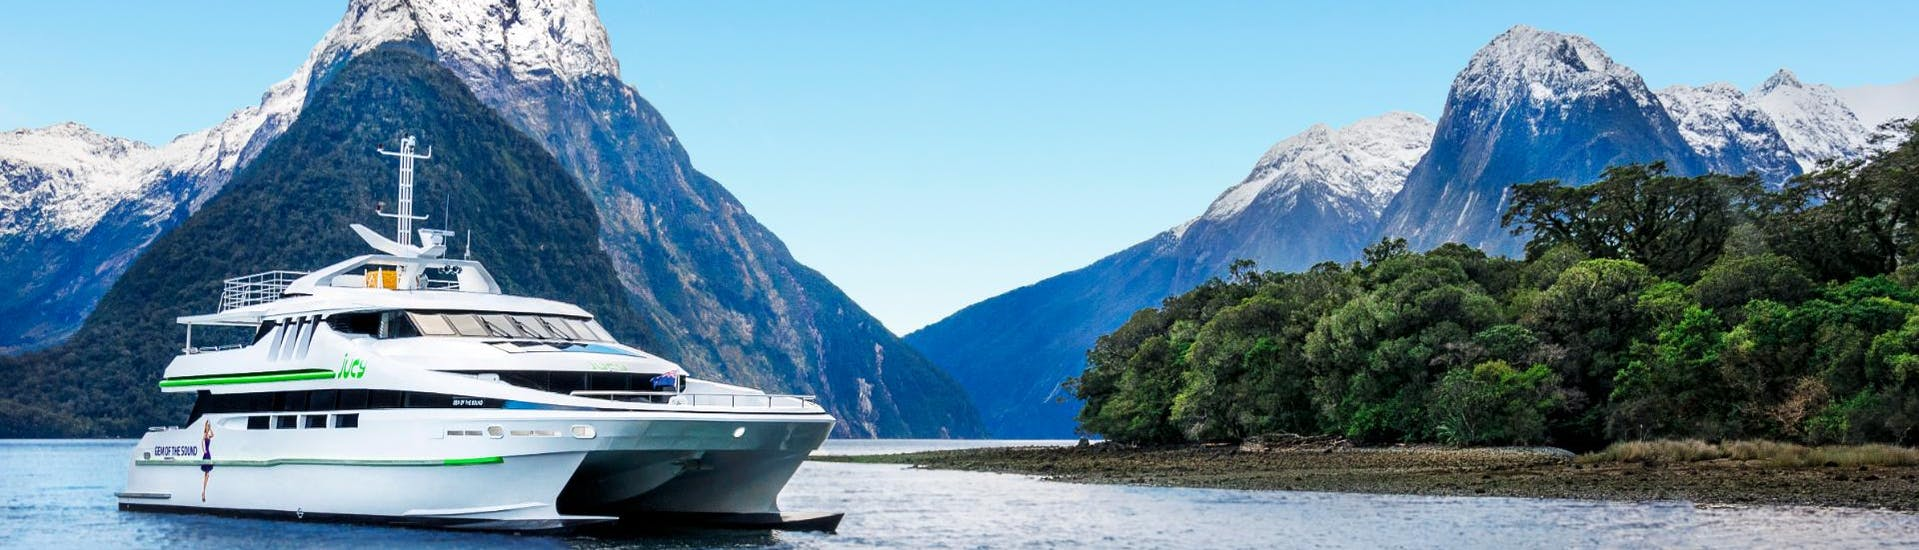 """A beautiful view on a luxurious catamaran from Jucy Cruise leaving for the Milford Sound Cruise """"Premium"""" - Winter."""